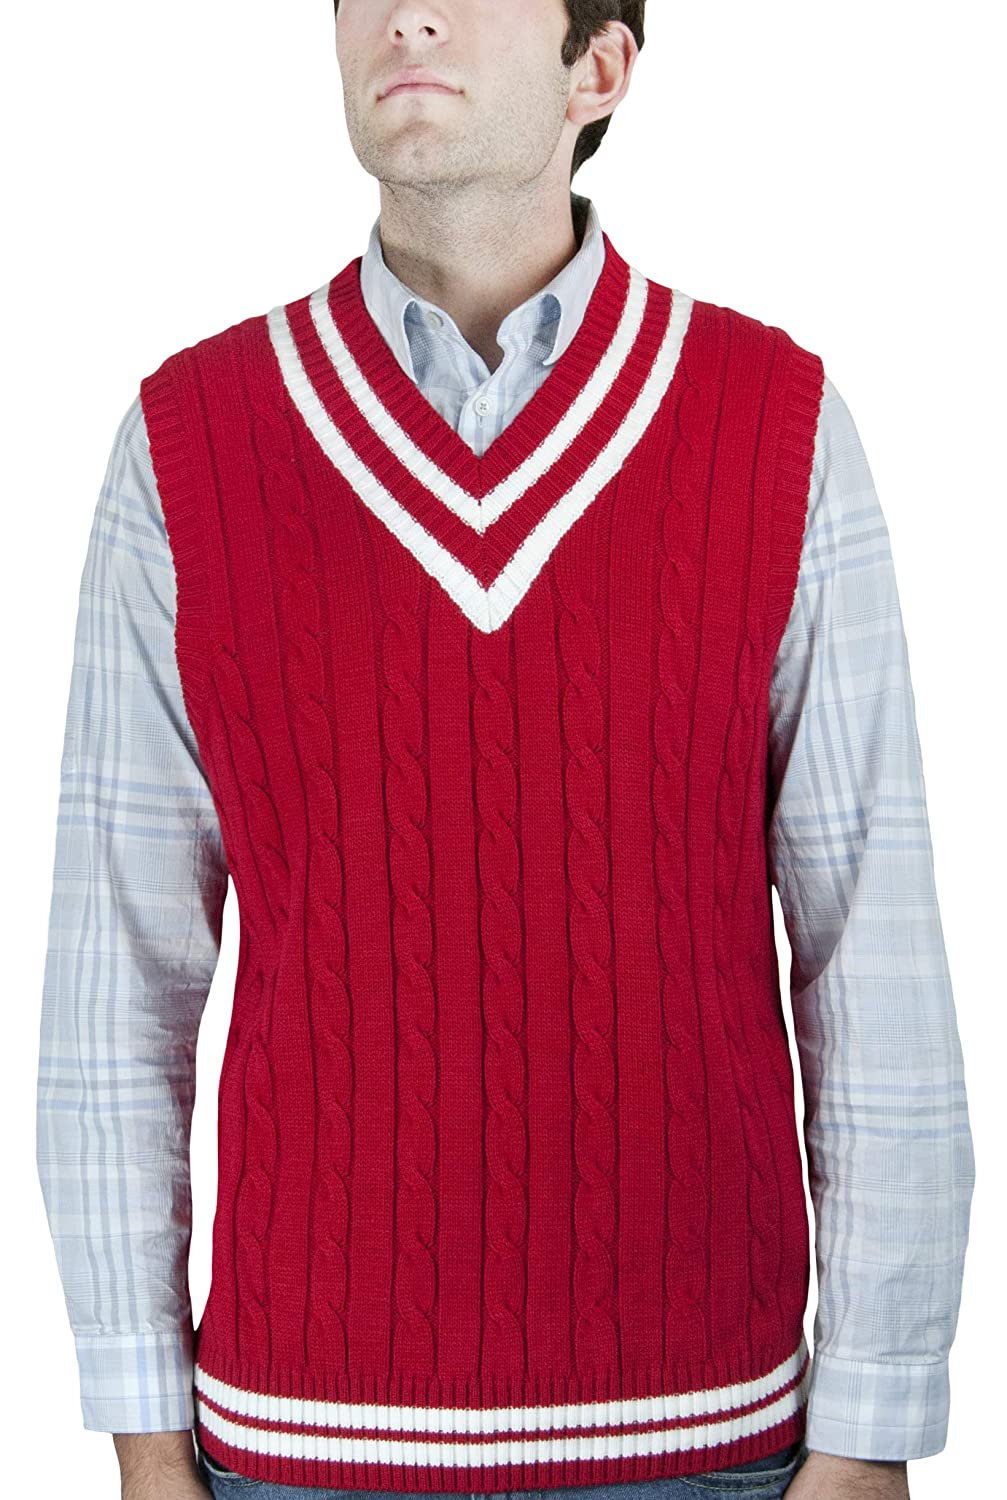 Blue Ocean Cricket Cable Sweater Vest SV-222